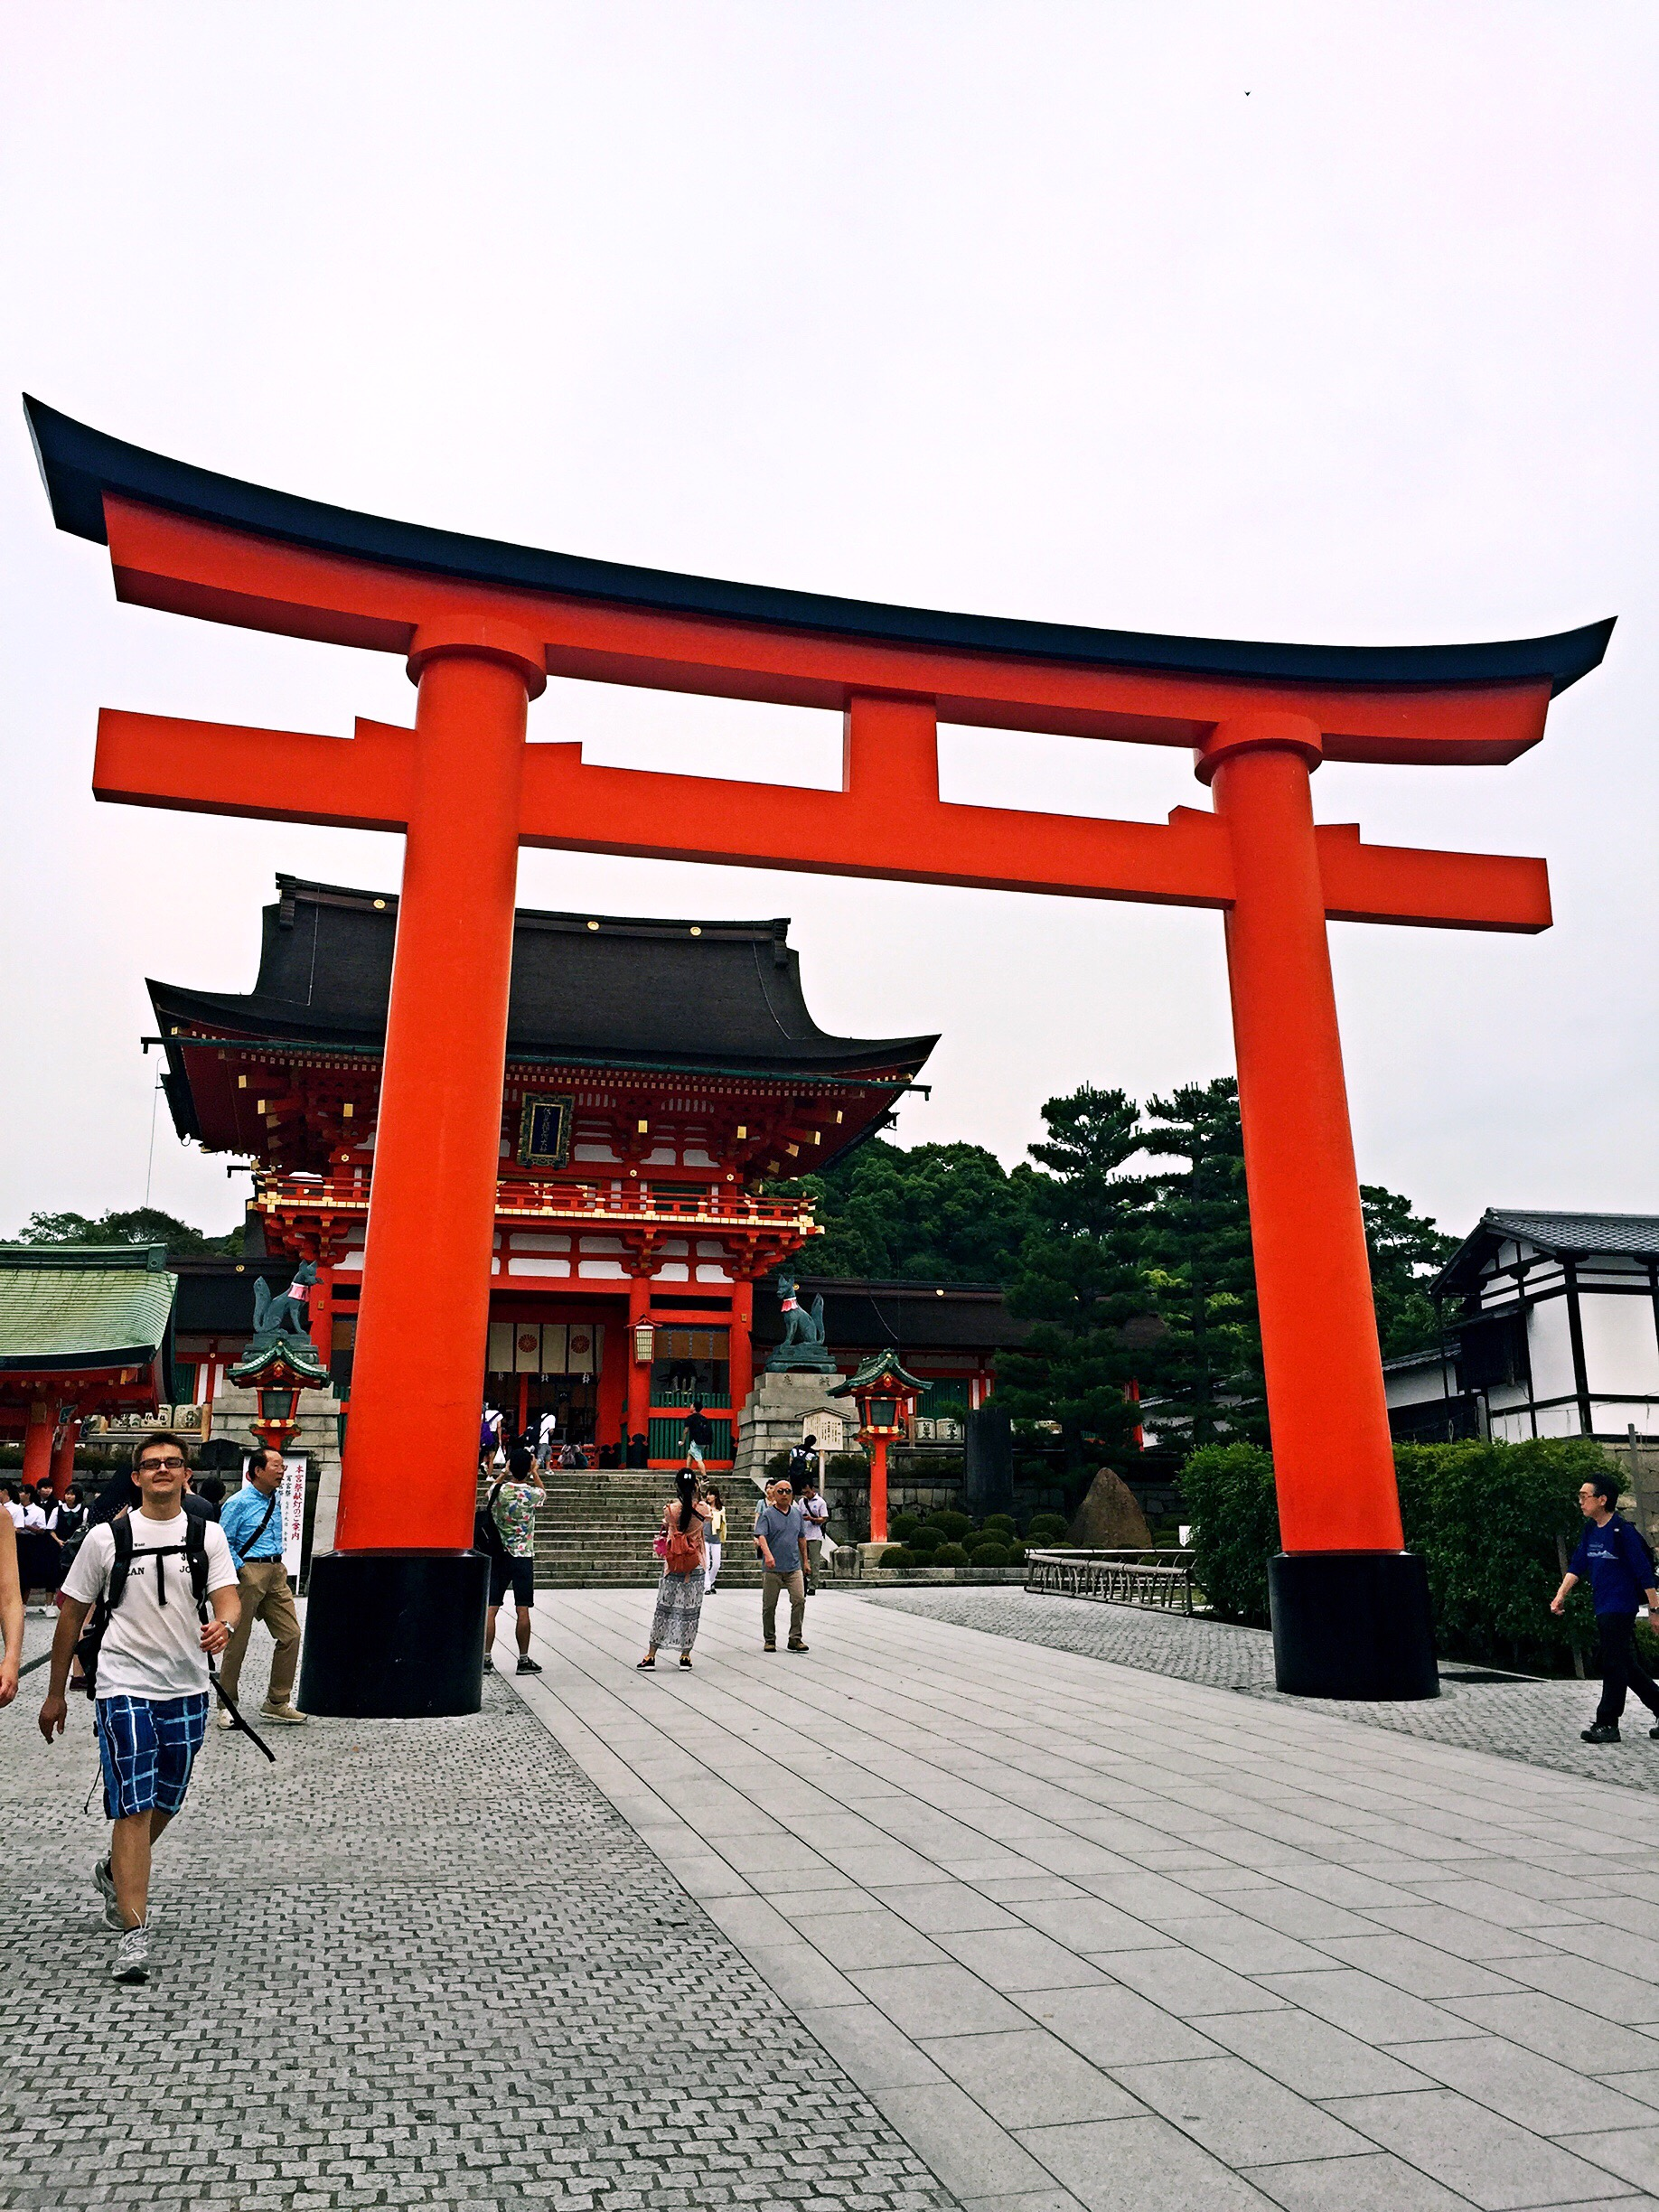 Torii gate in front of main building, Honden